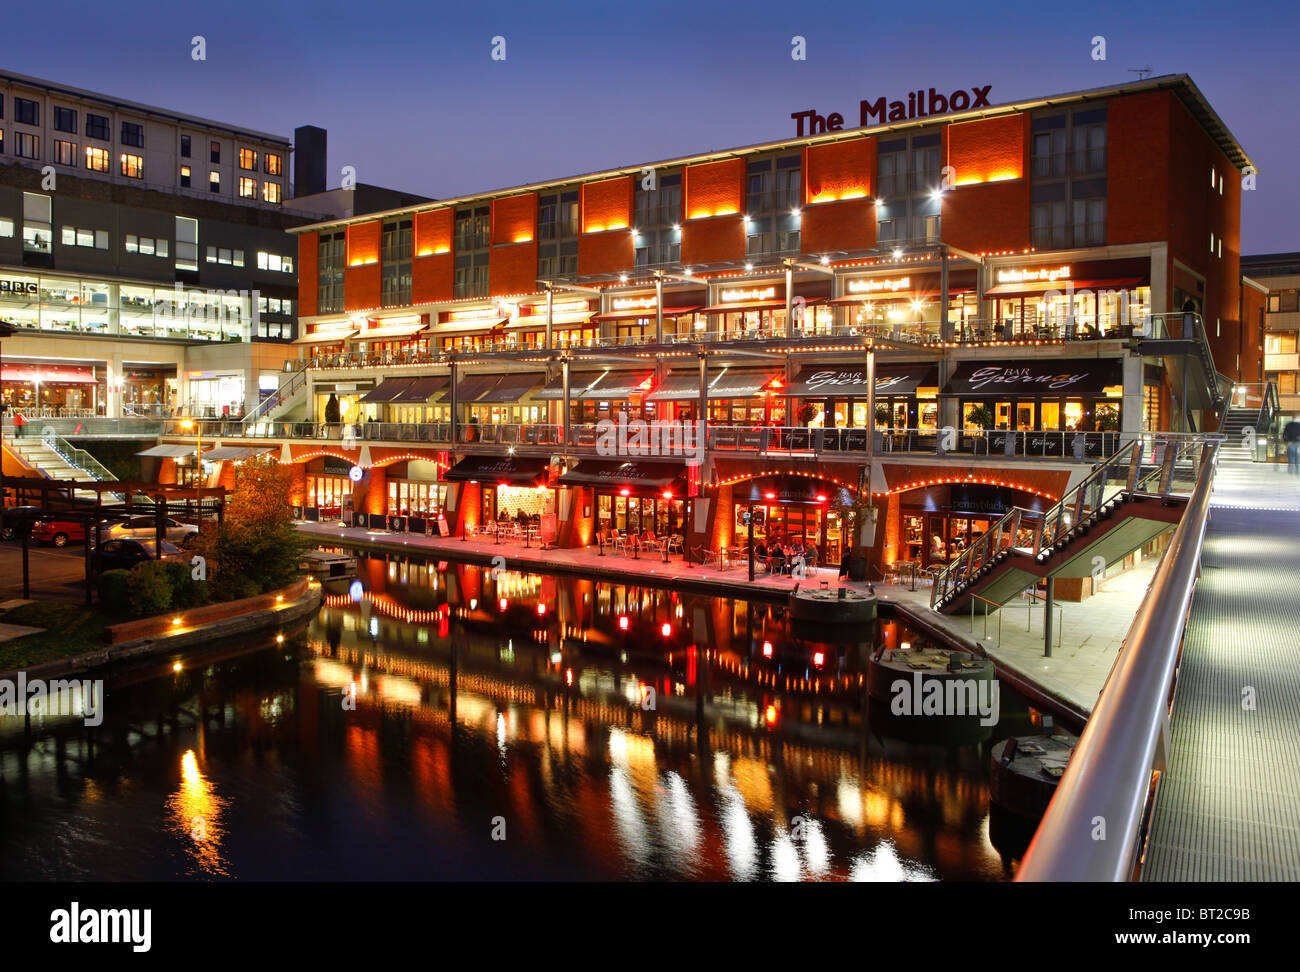 The Mailbox development at night, showing bars and restaurants along the canal. Birmingham, West Midlands, England, - Stock Image